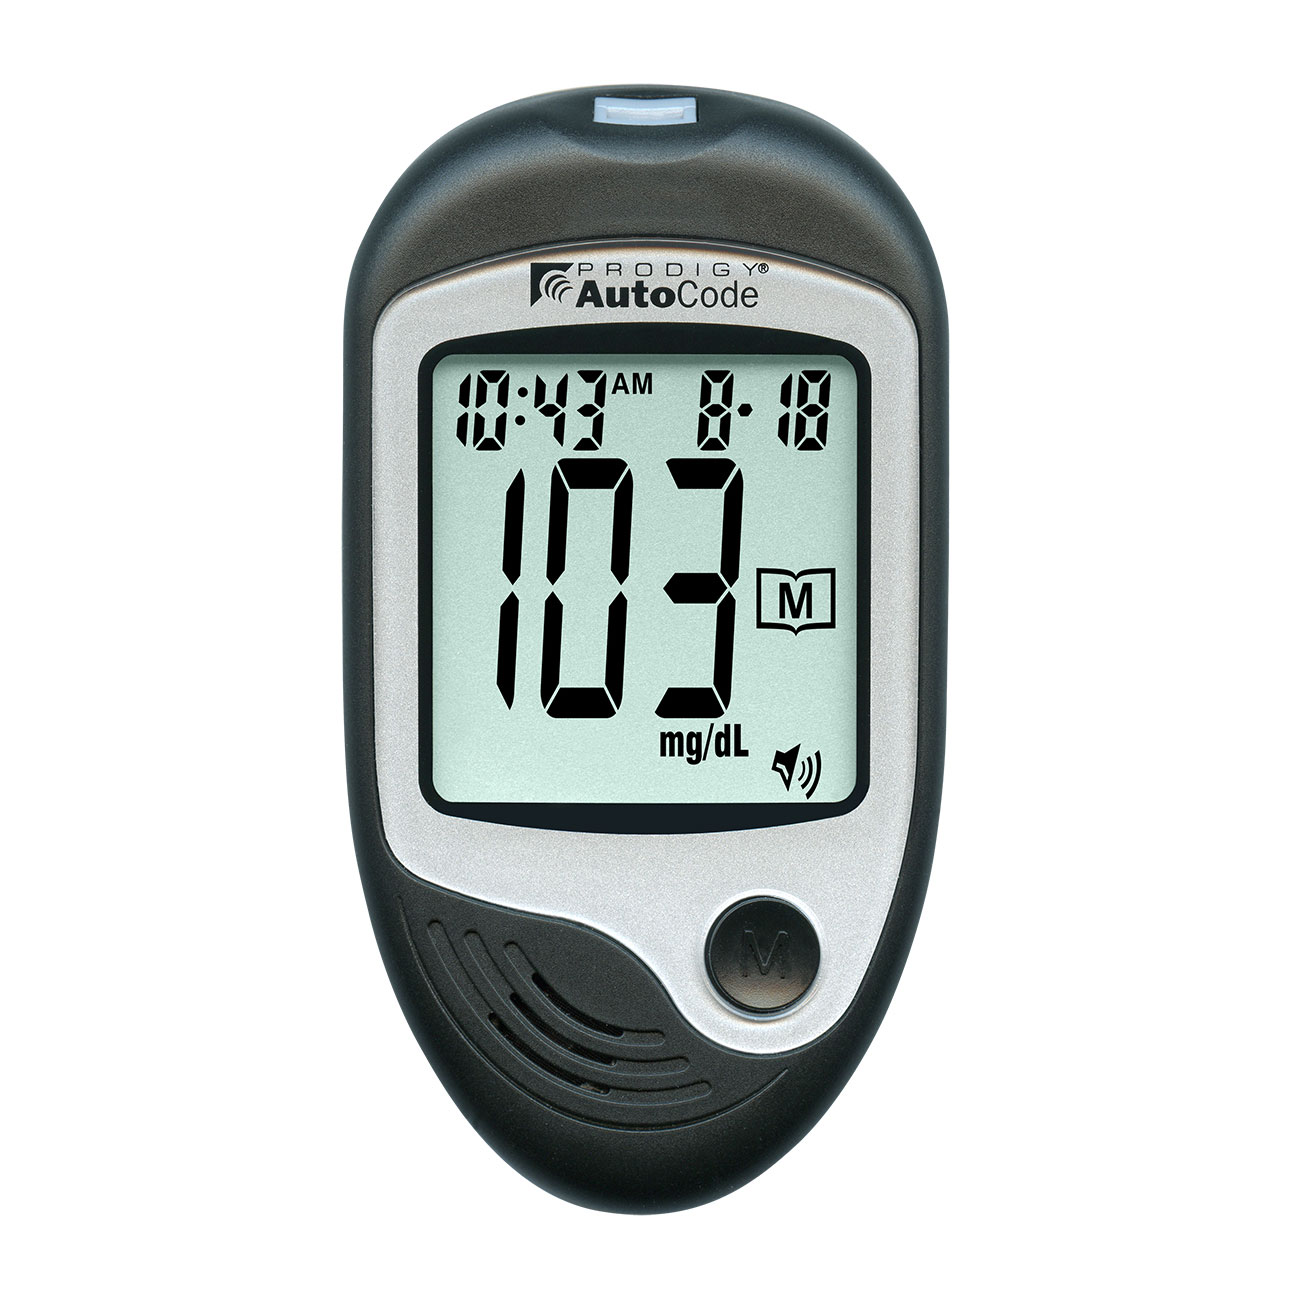 AutoCode Talking Blood Glucose Monitoring Kit - 4 Languages